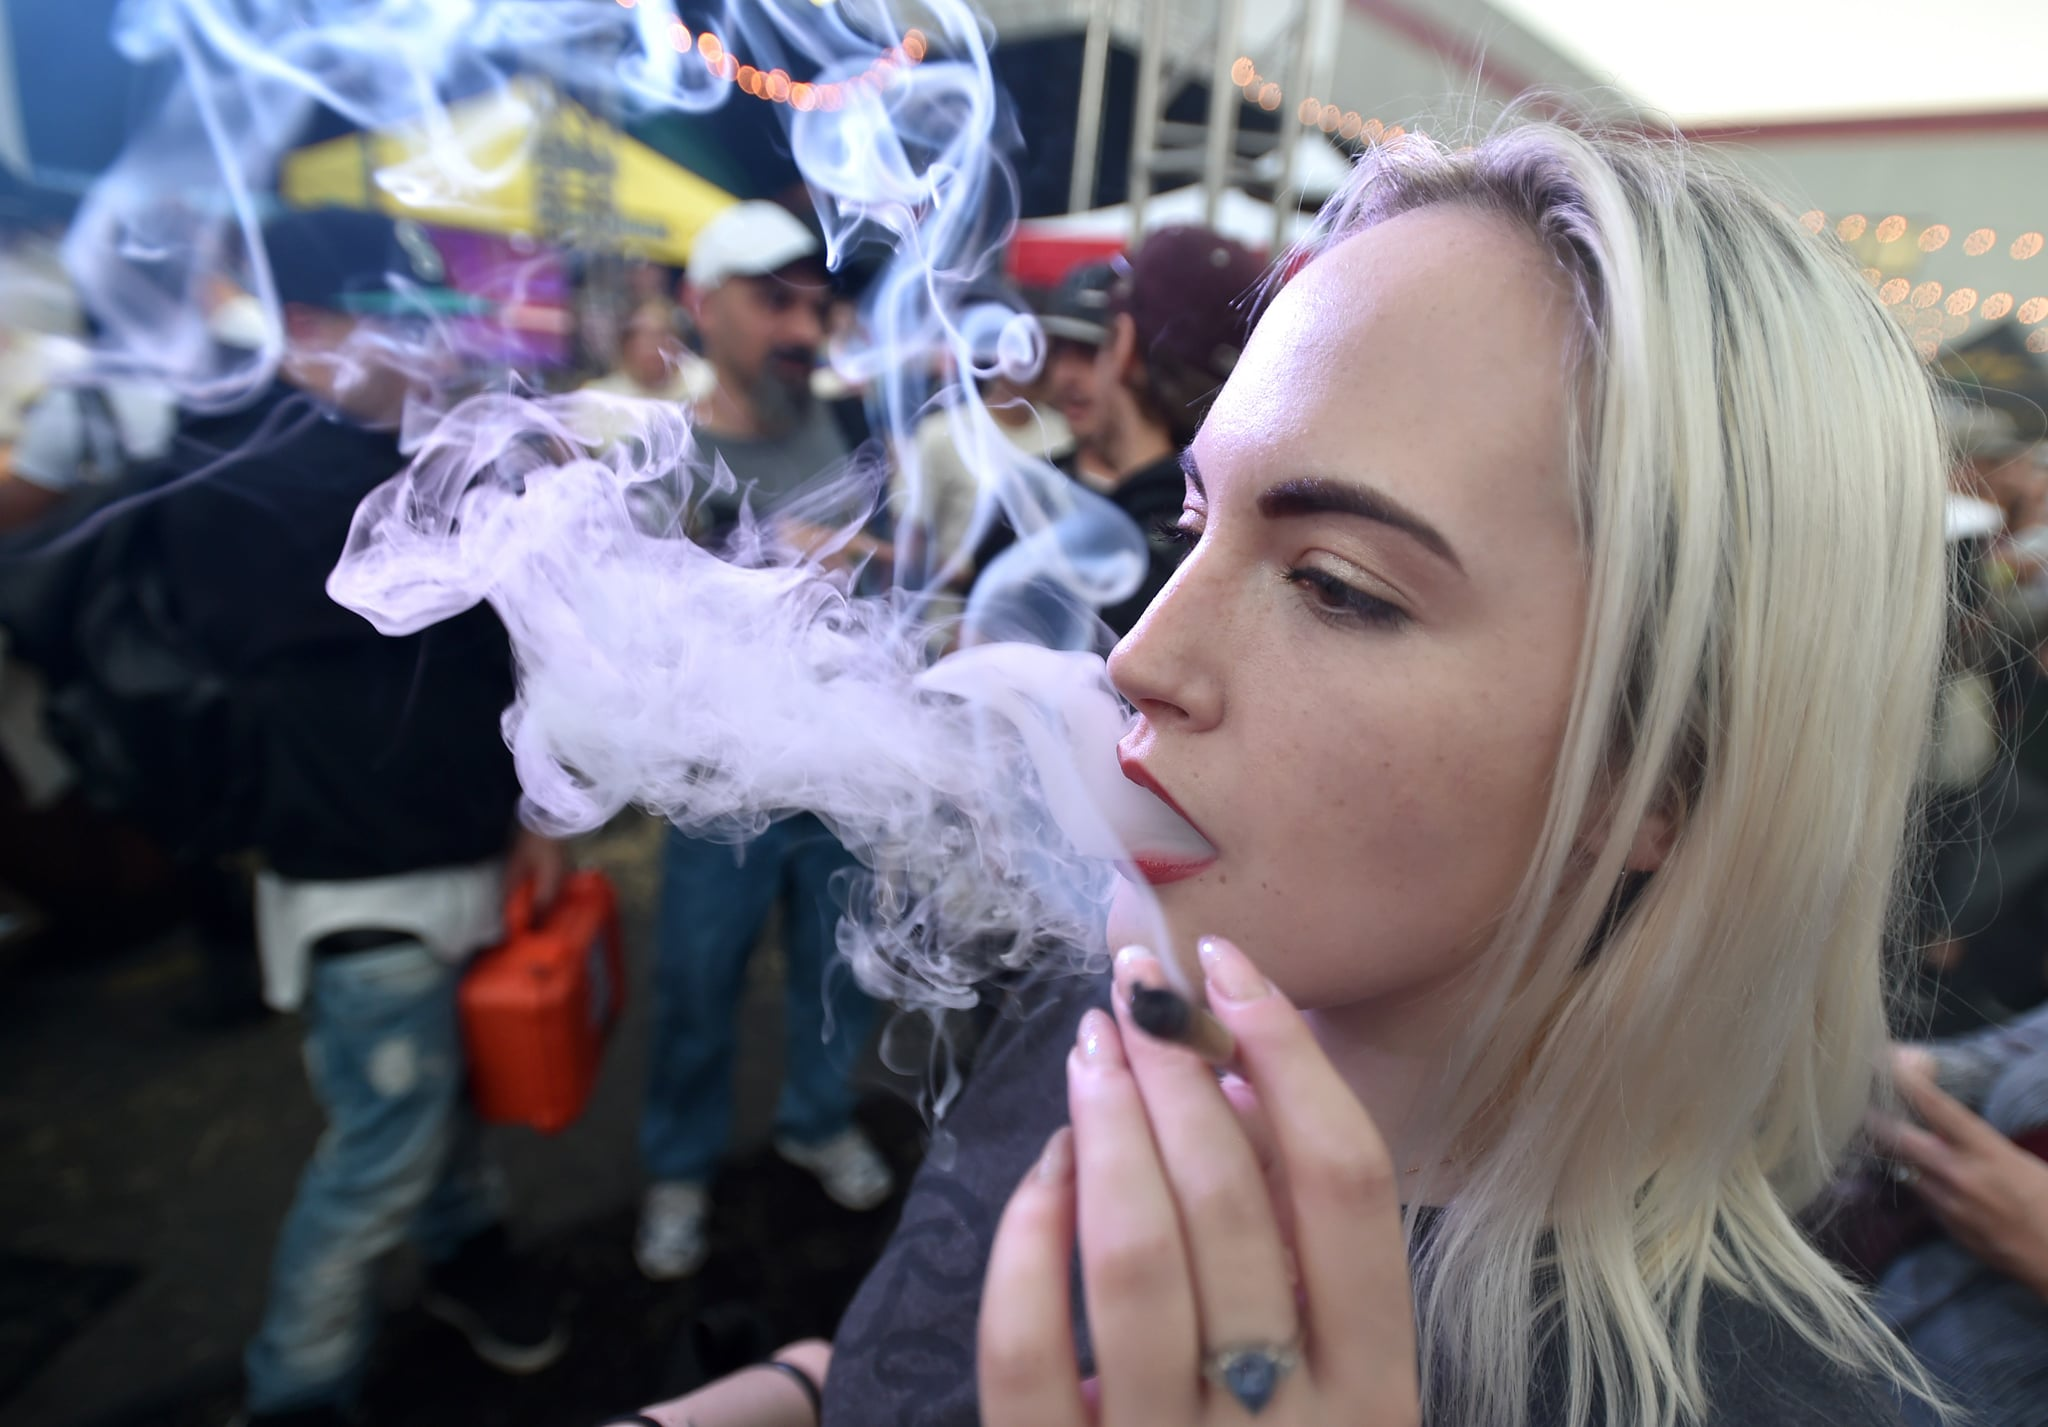 hot blonde girl at hemp festival getting blazed